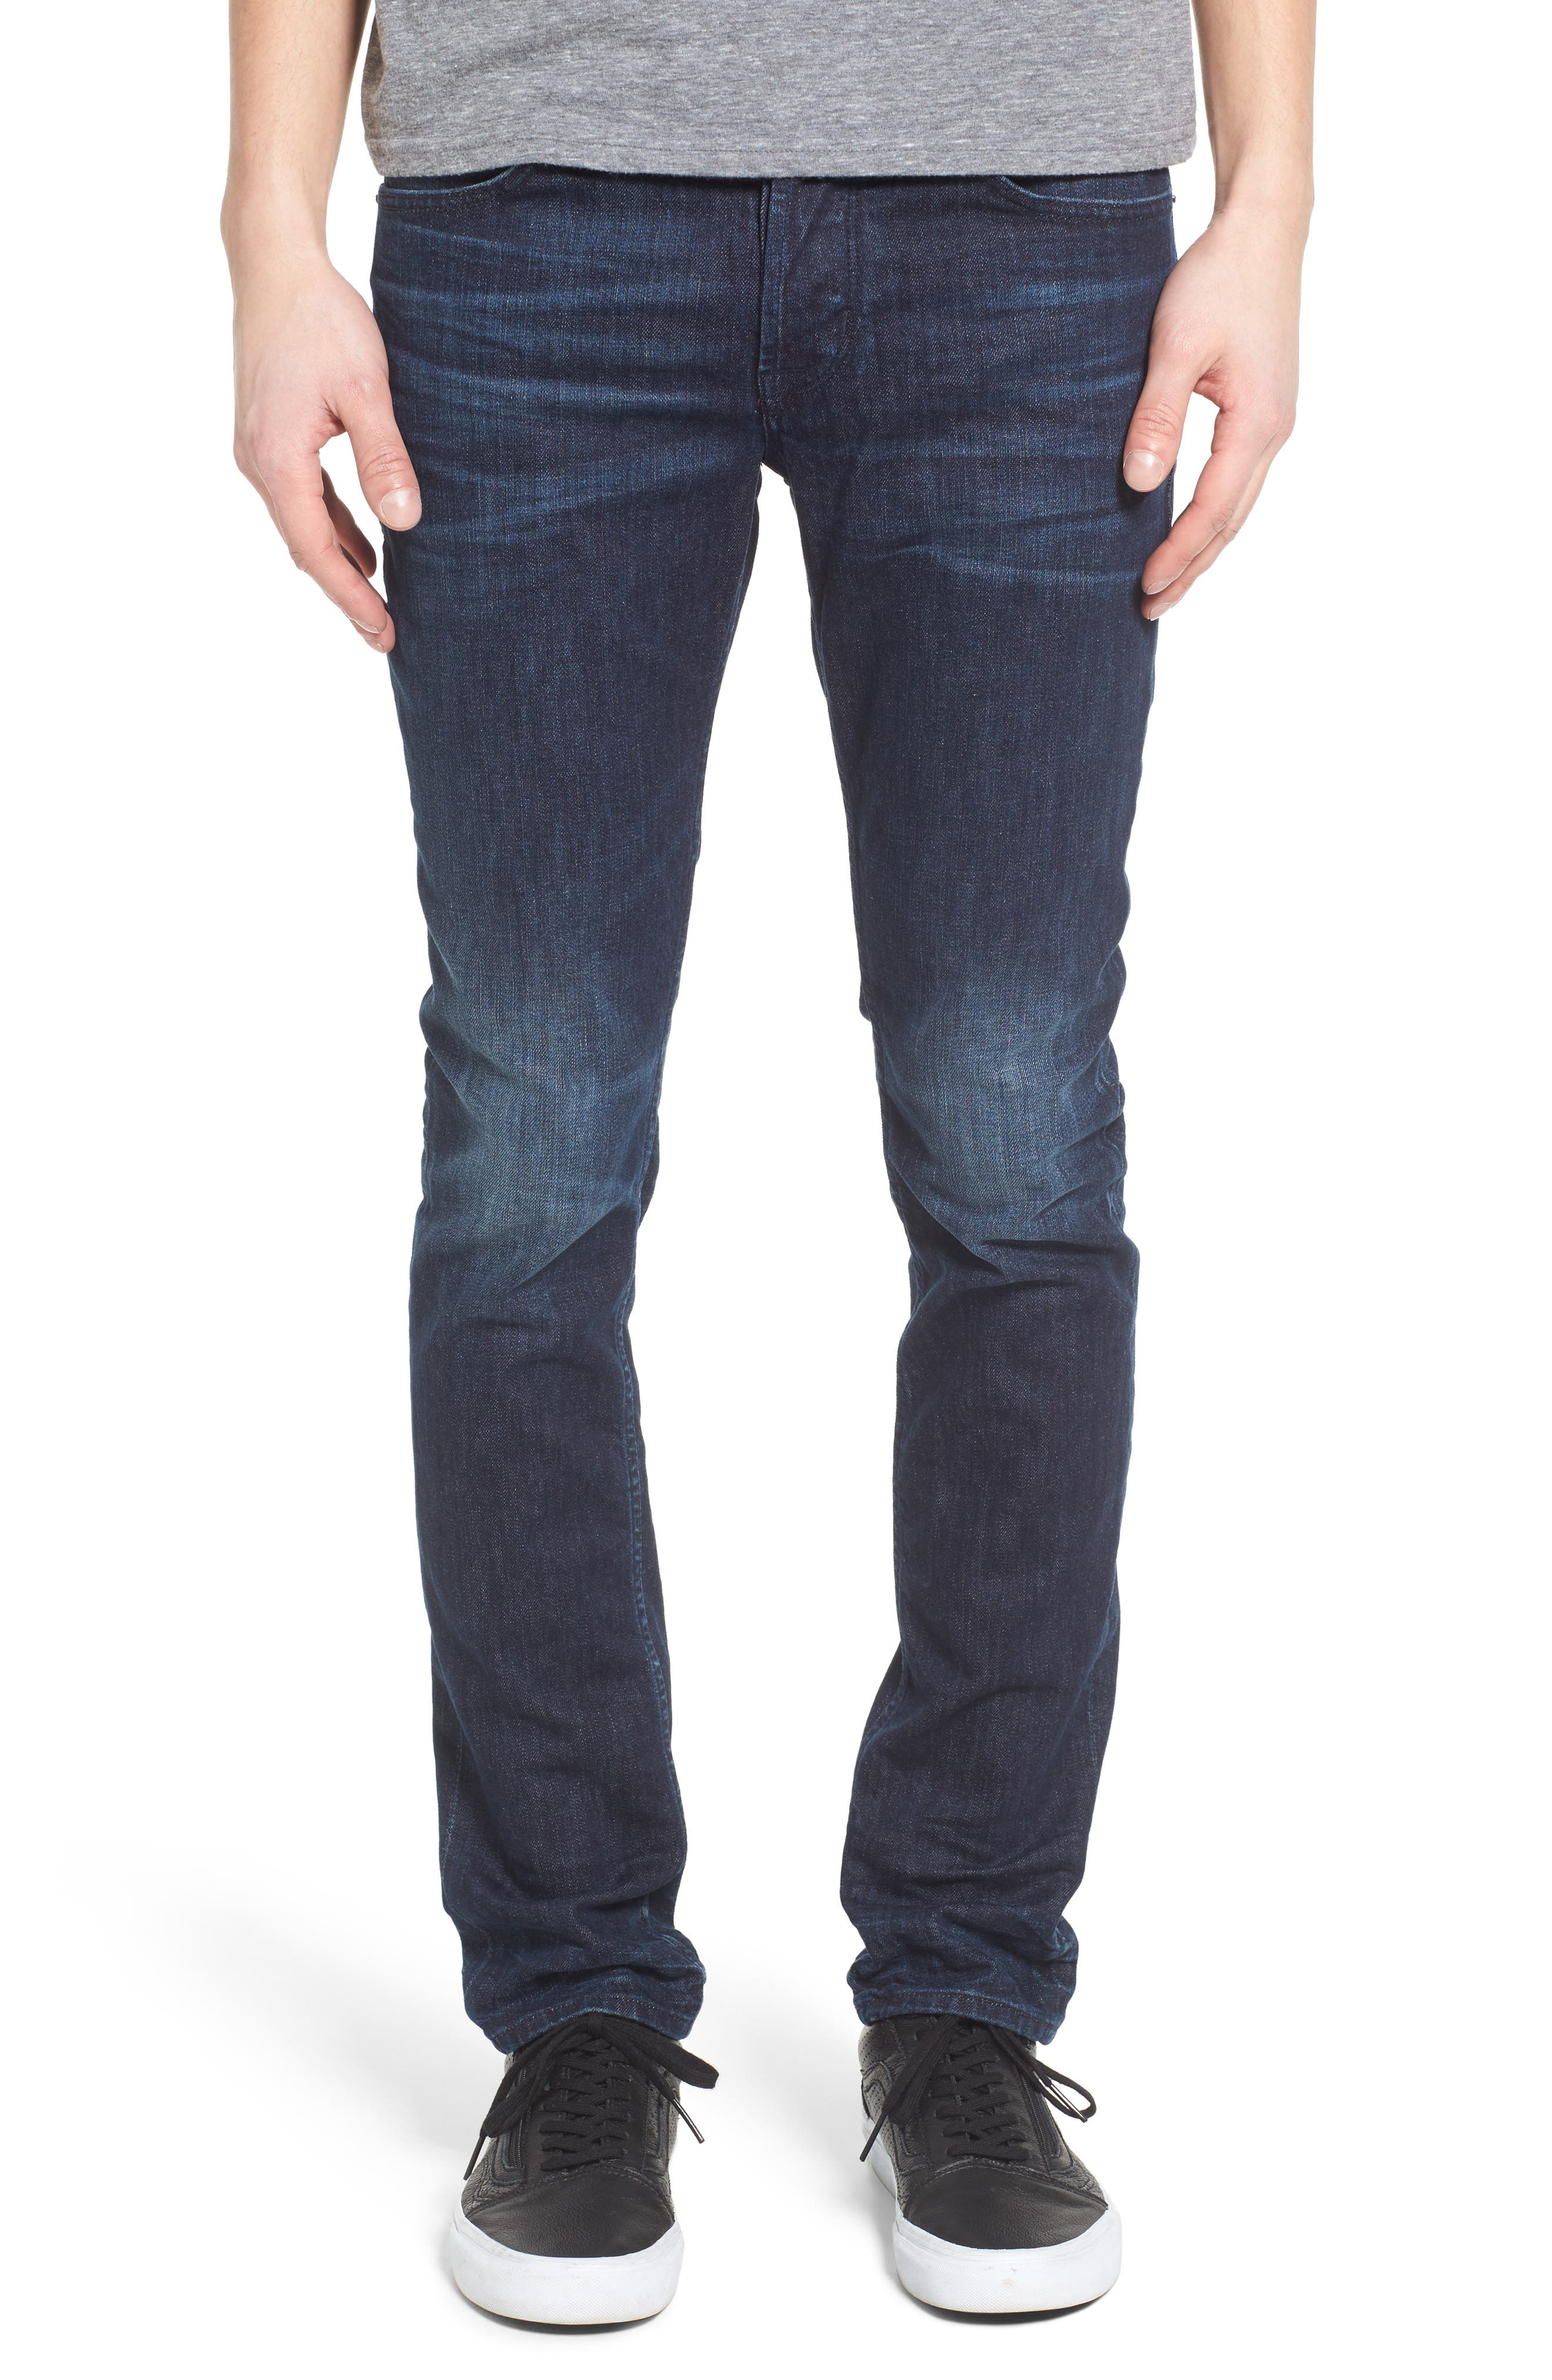 Main Image - Hudson Jeans Axl Skinny Fit Jeans (Glove Game)